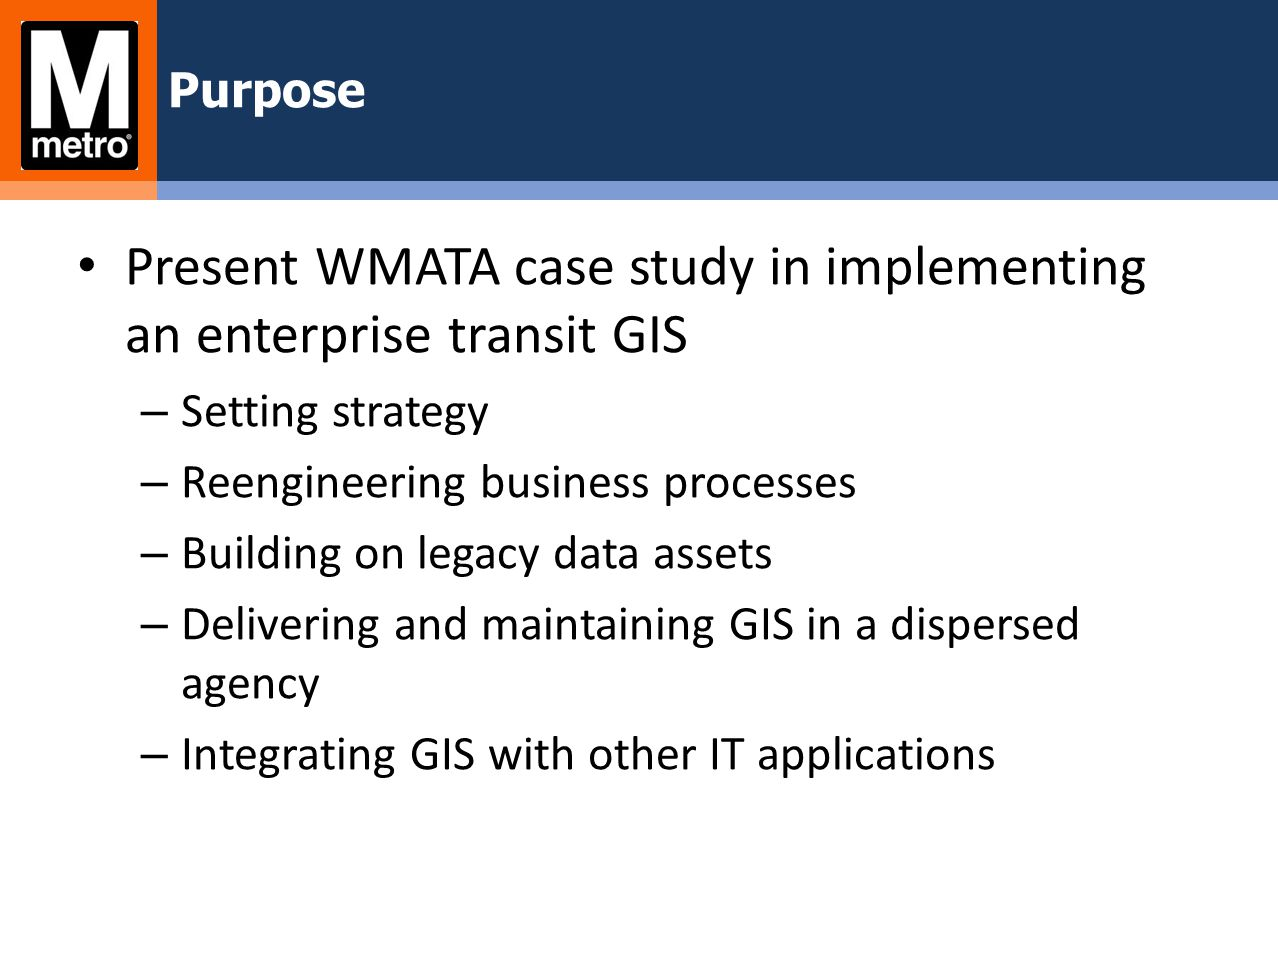 Present WMATA case study in implementing an enterprise transit GIS